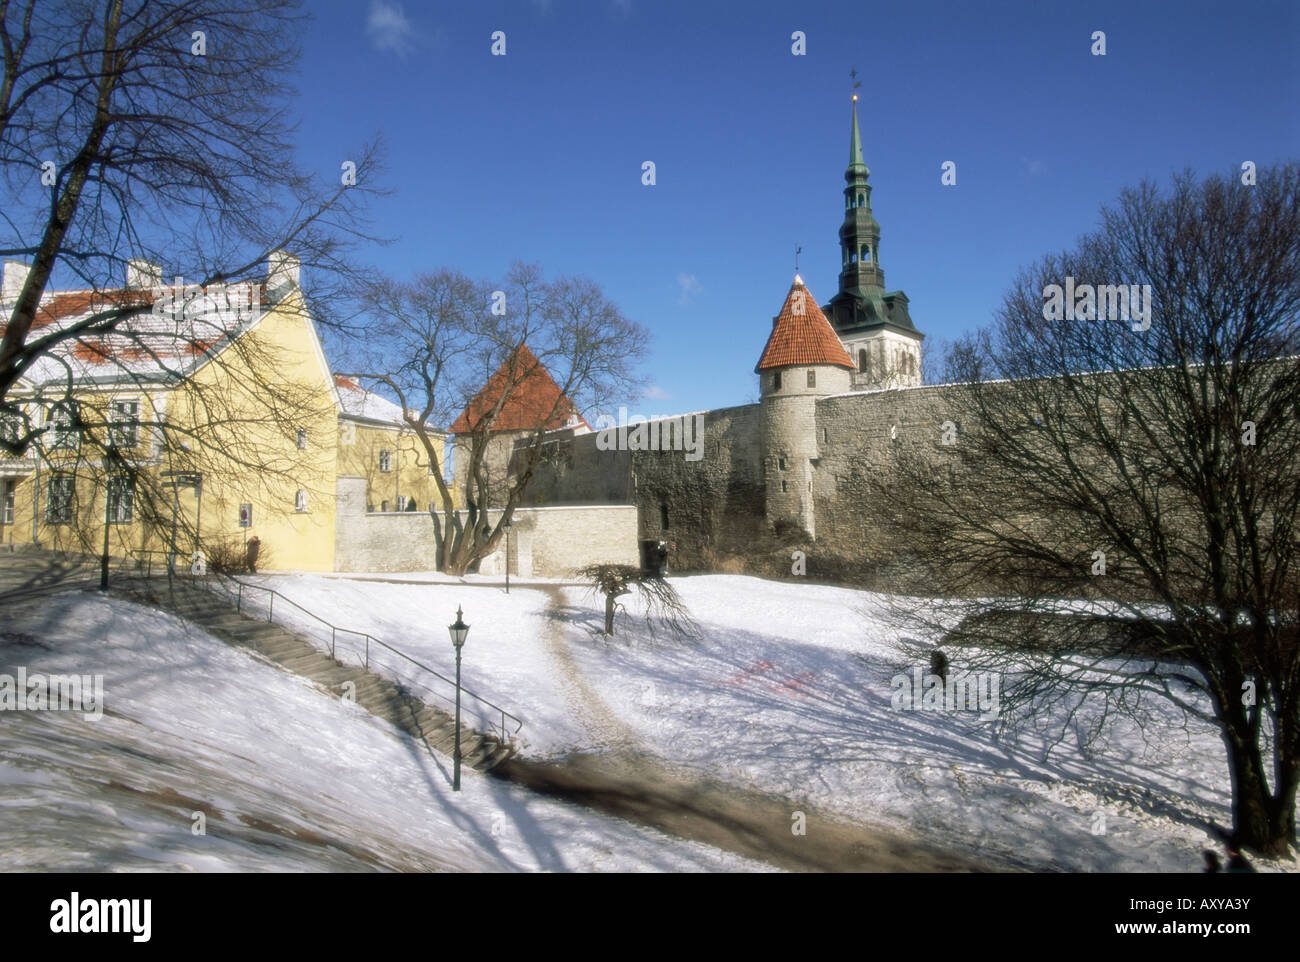 The Old Town in winter, Tallinn, UNESCO World Heritage Site, Estonia, Baltic States, Europe - Stock Image